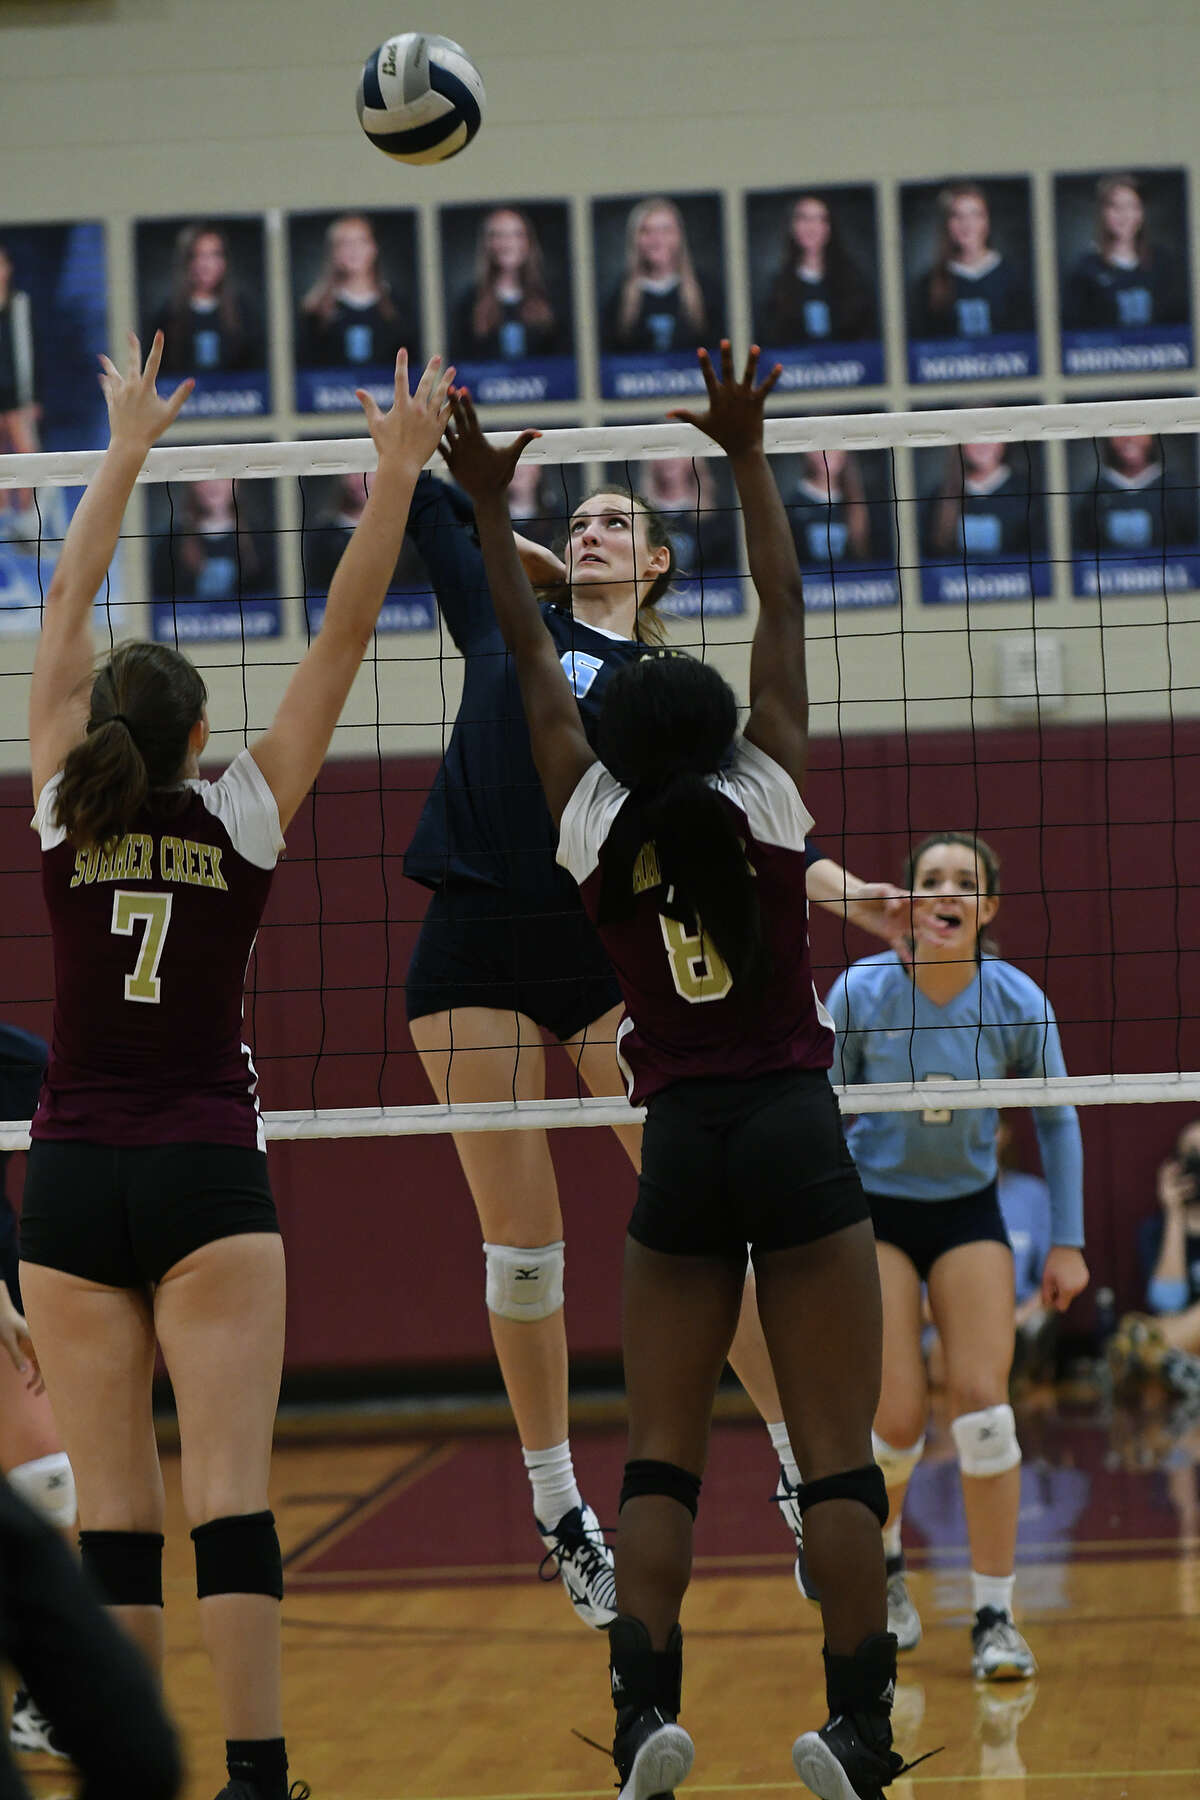 Kingwood junior middle blocker Camden Gray (6) attempts a kill against Summer Creek senior Regan Wright (7) and Lady Bulldog junior Amiya Matthews (8) during their District 21-6A matchup at Summer Creek High School on Sept. 26, 2017. (Photo by Jerry Baker/Freelance)